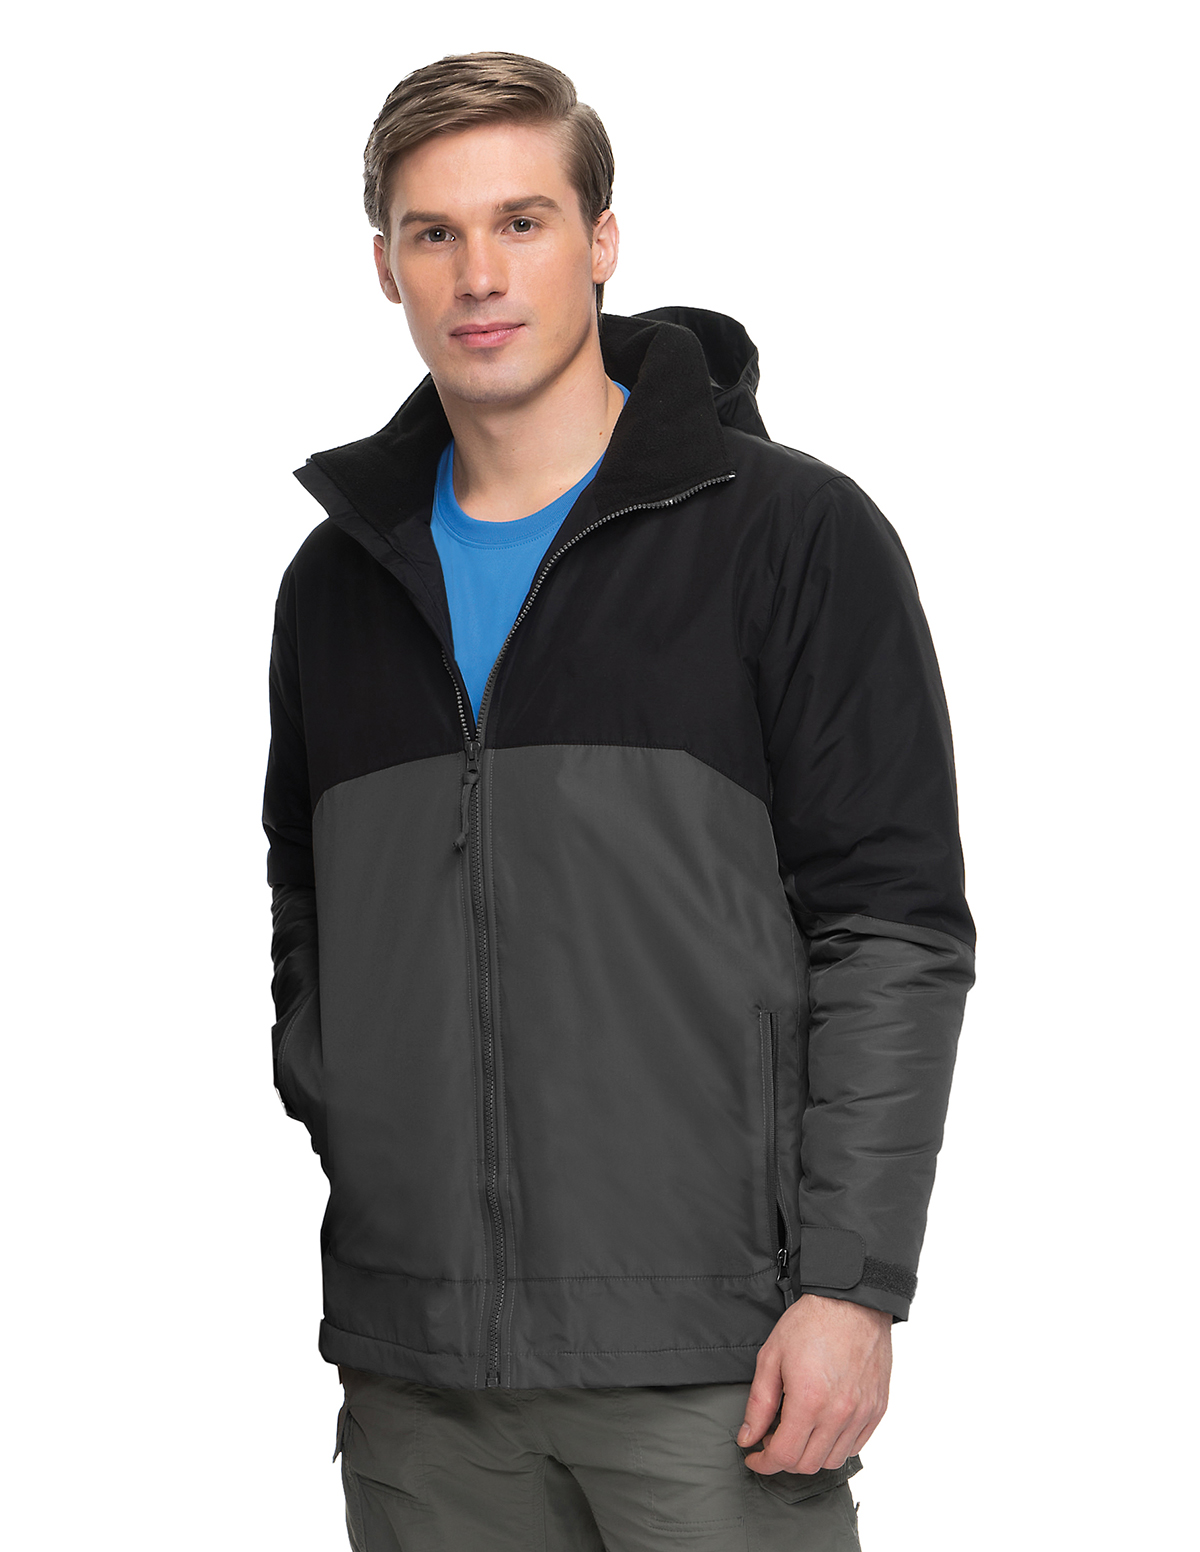 Tri-Mountain J8920 - Edge Men's Heavyweight Jacket